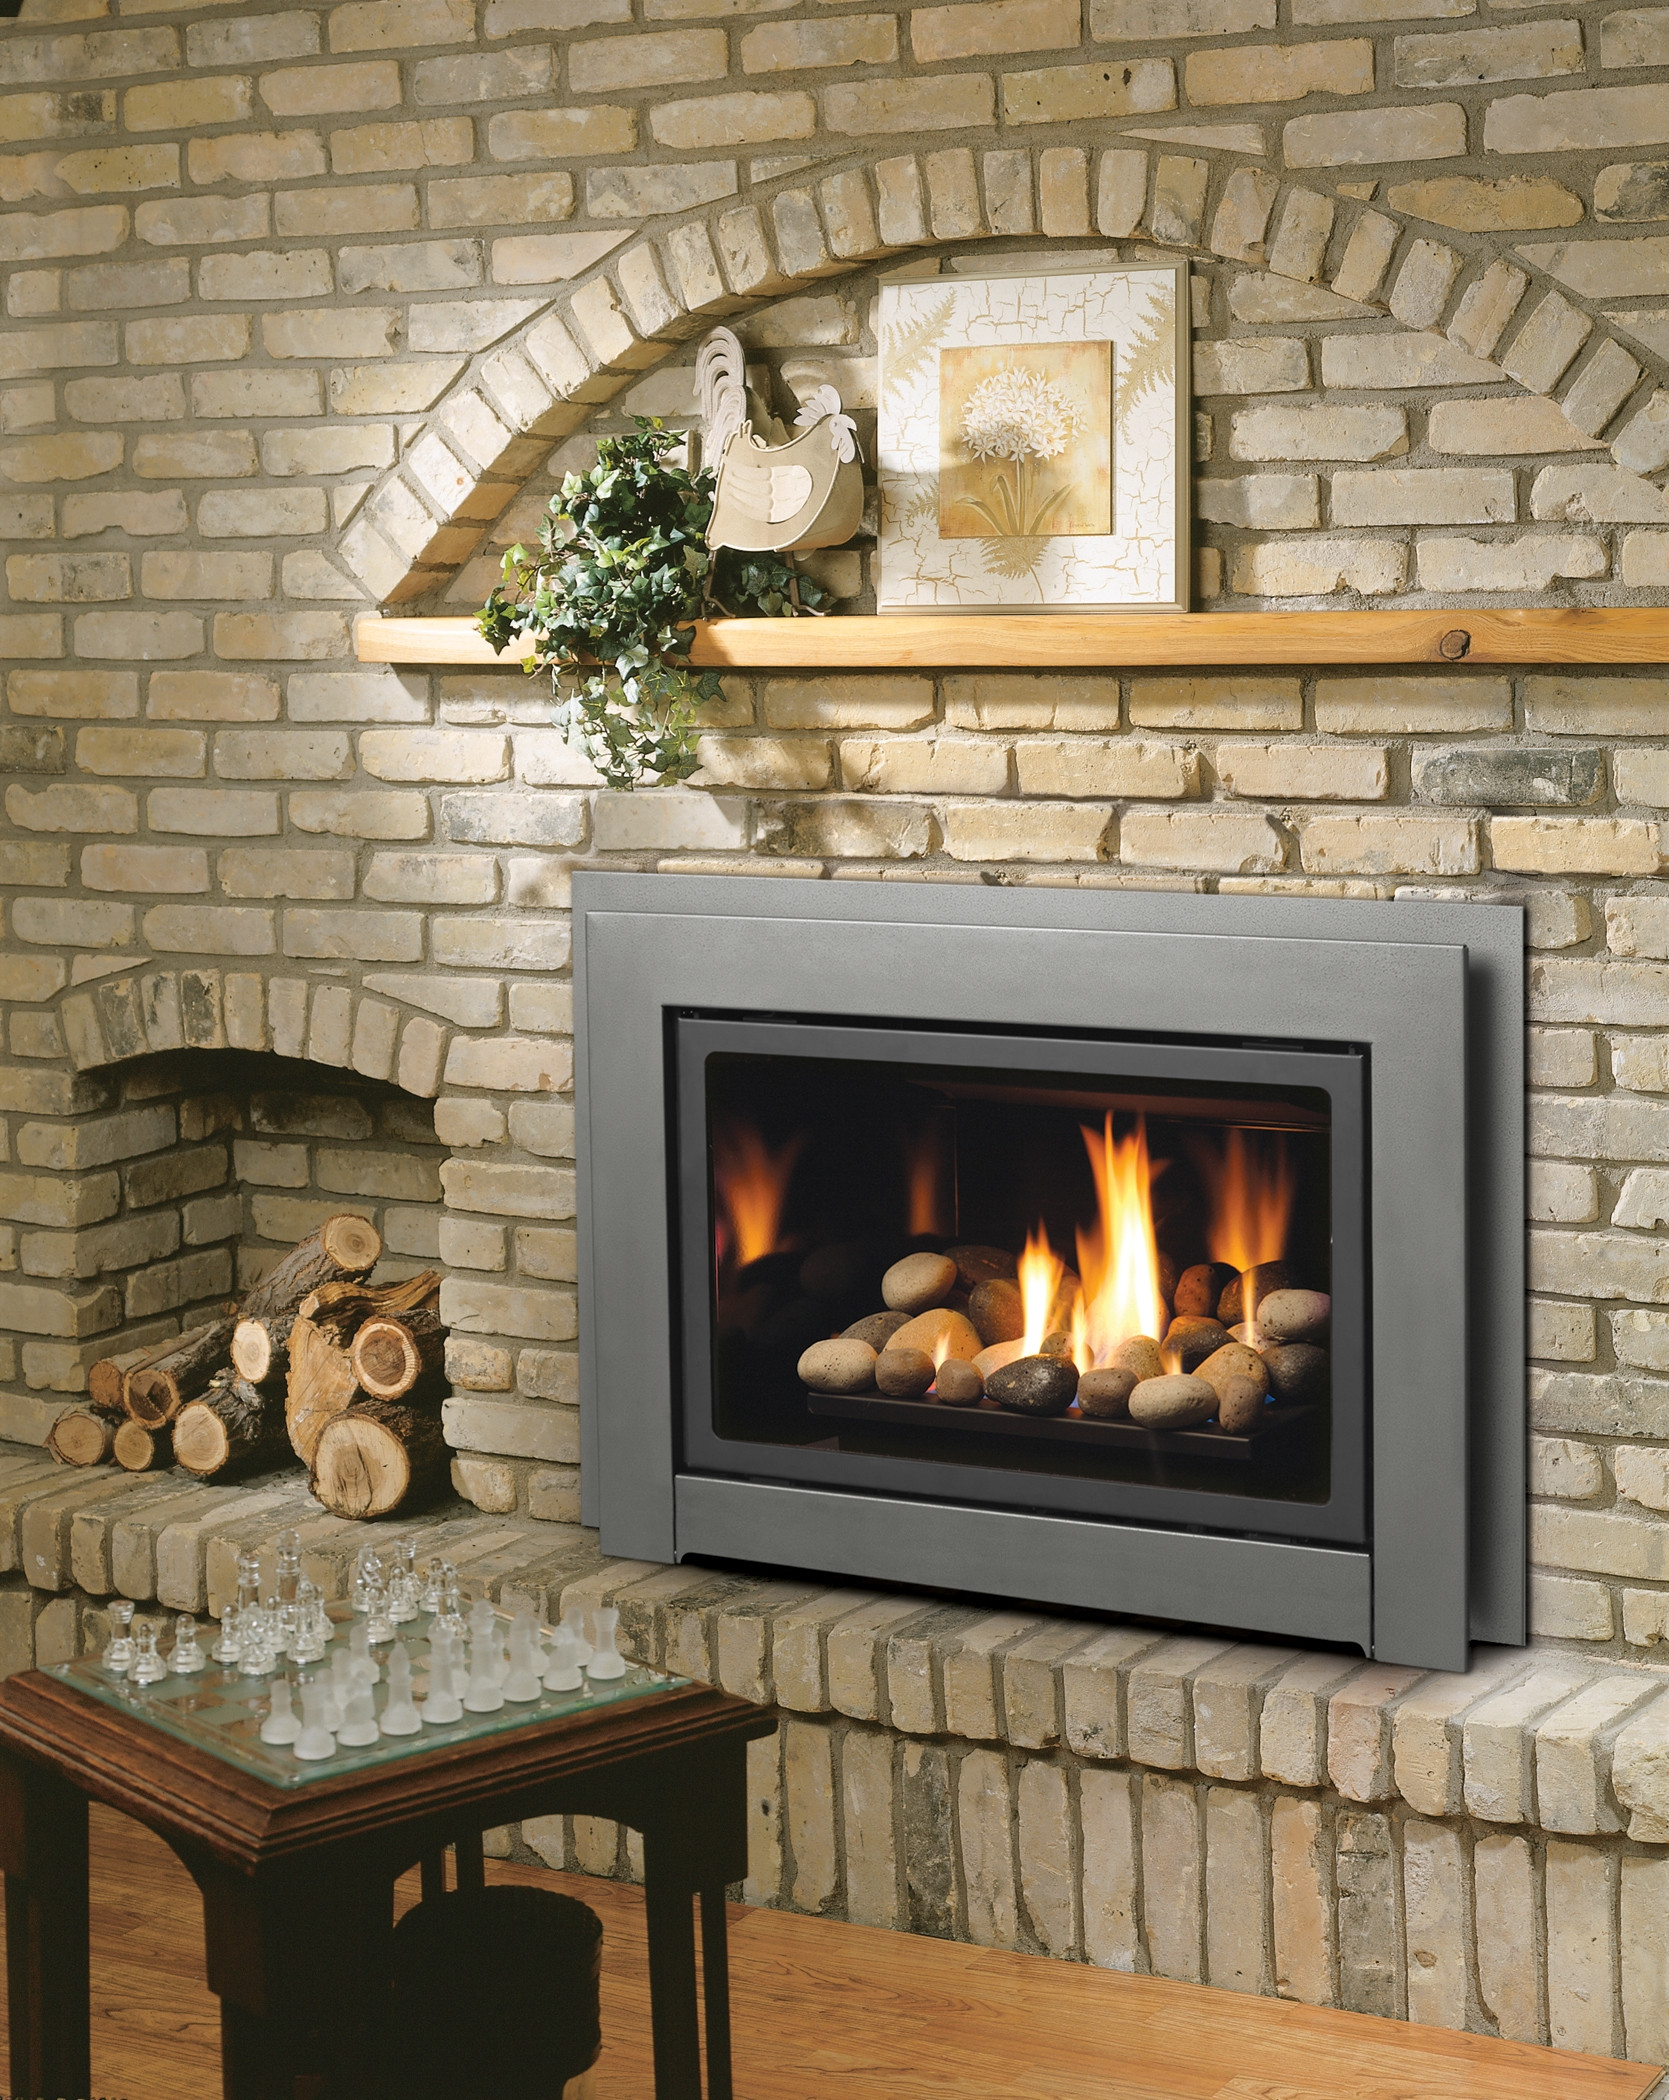 Best ideas about Propane Fireplace Inserts . Save or Pin Gas Inserts Now.